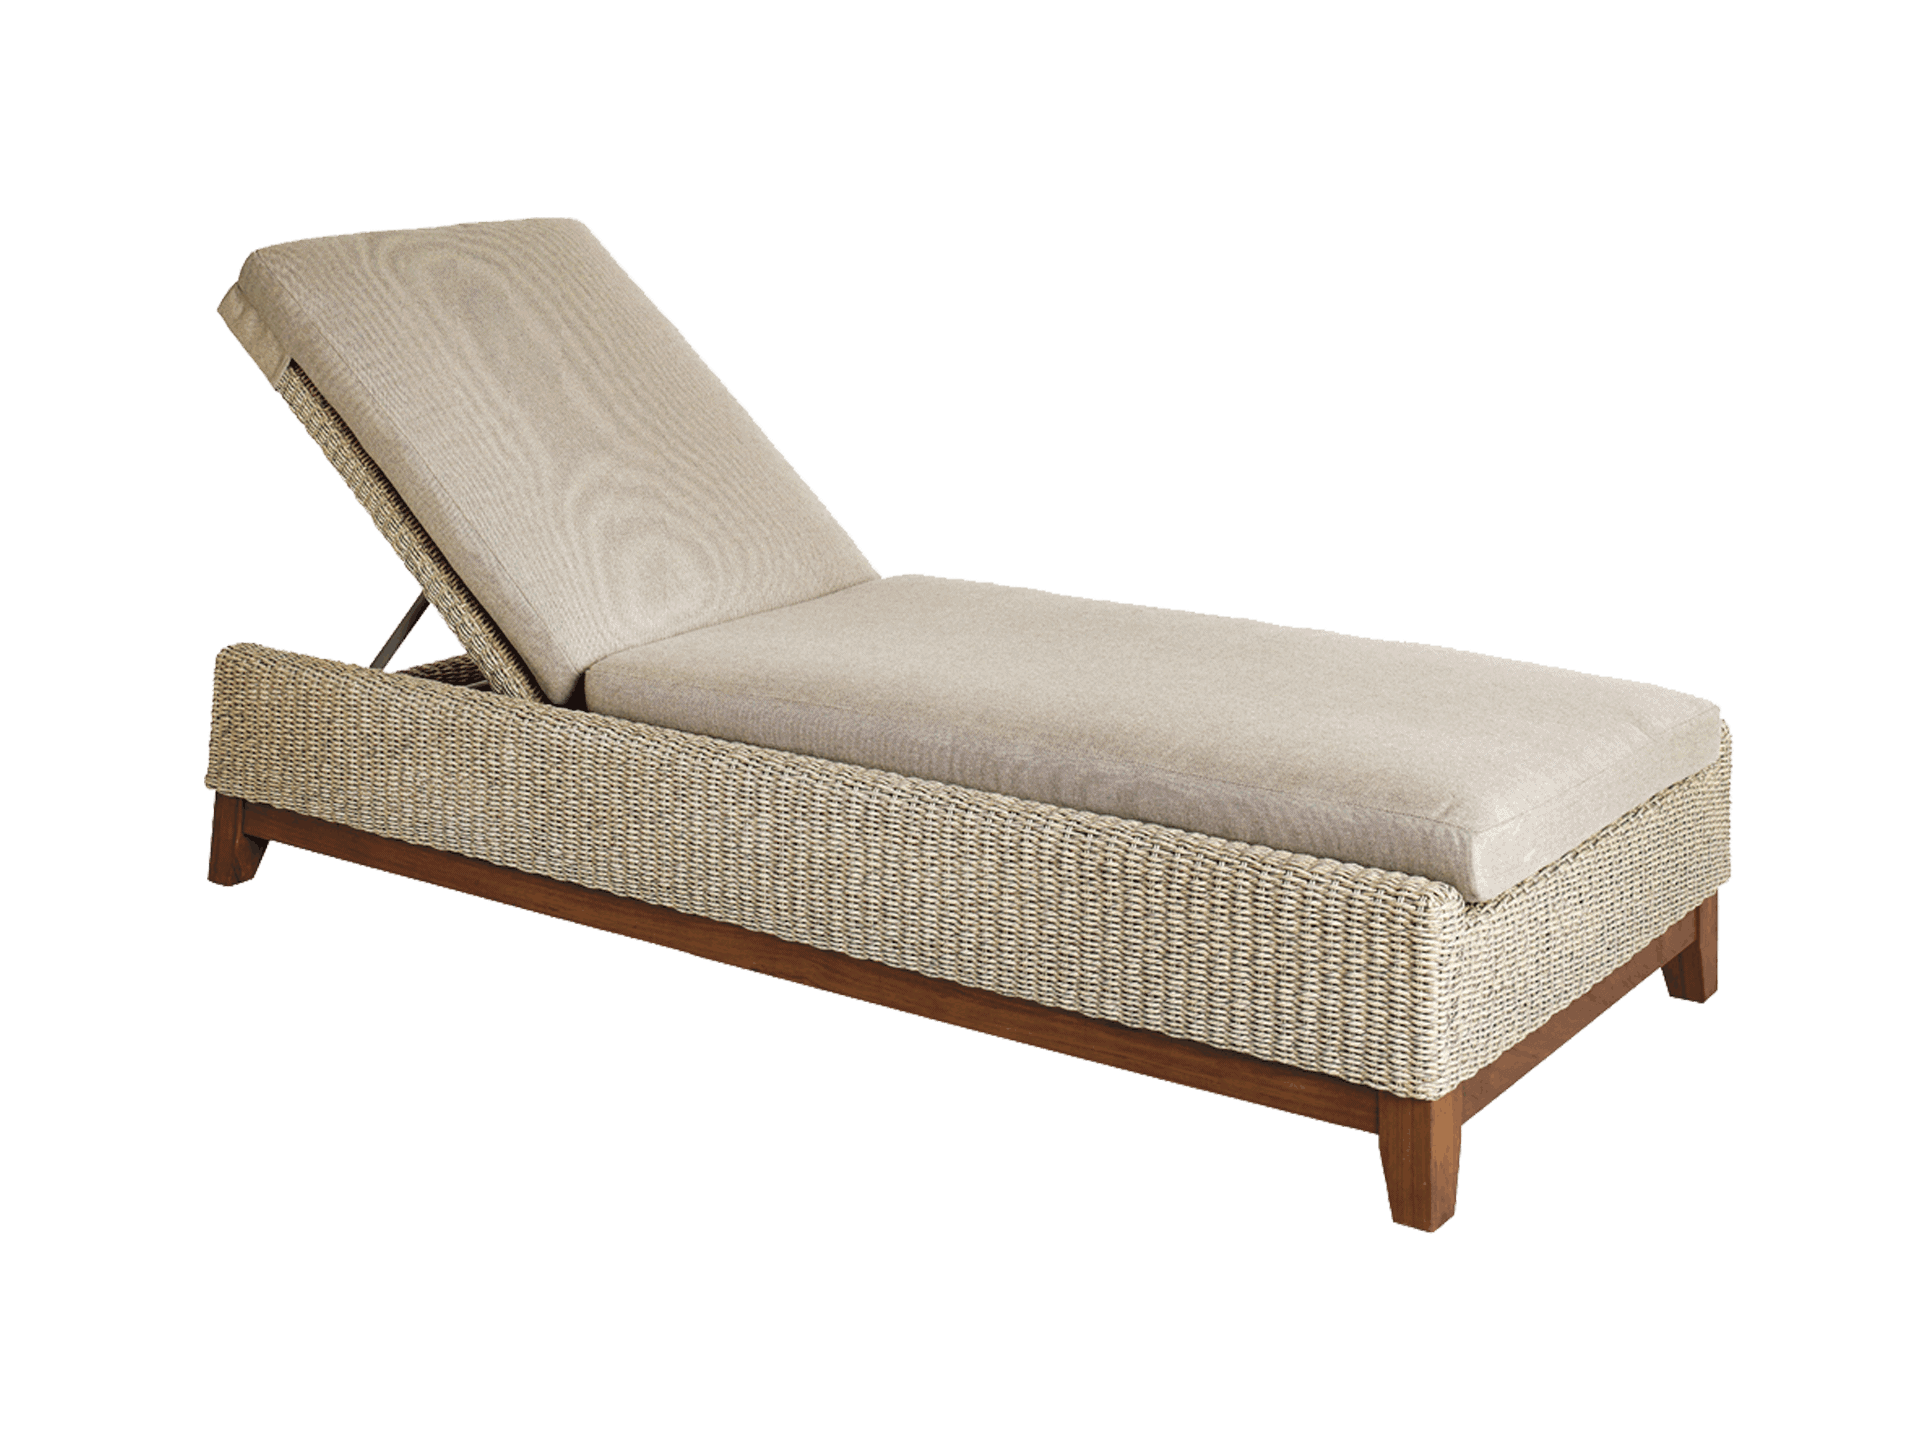 Coral Chaise Lounge Assembled Jensen Leisure Furniture